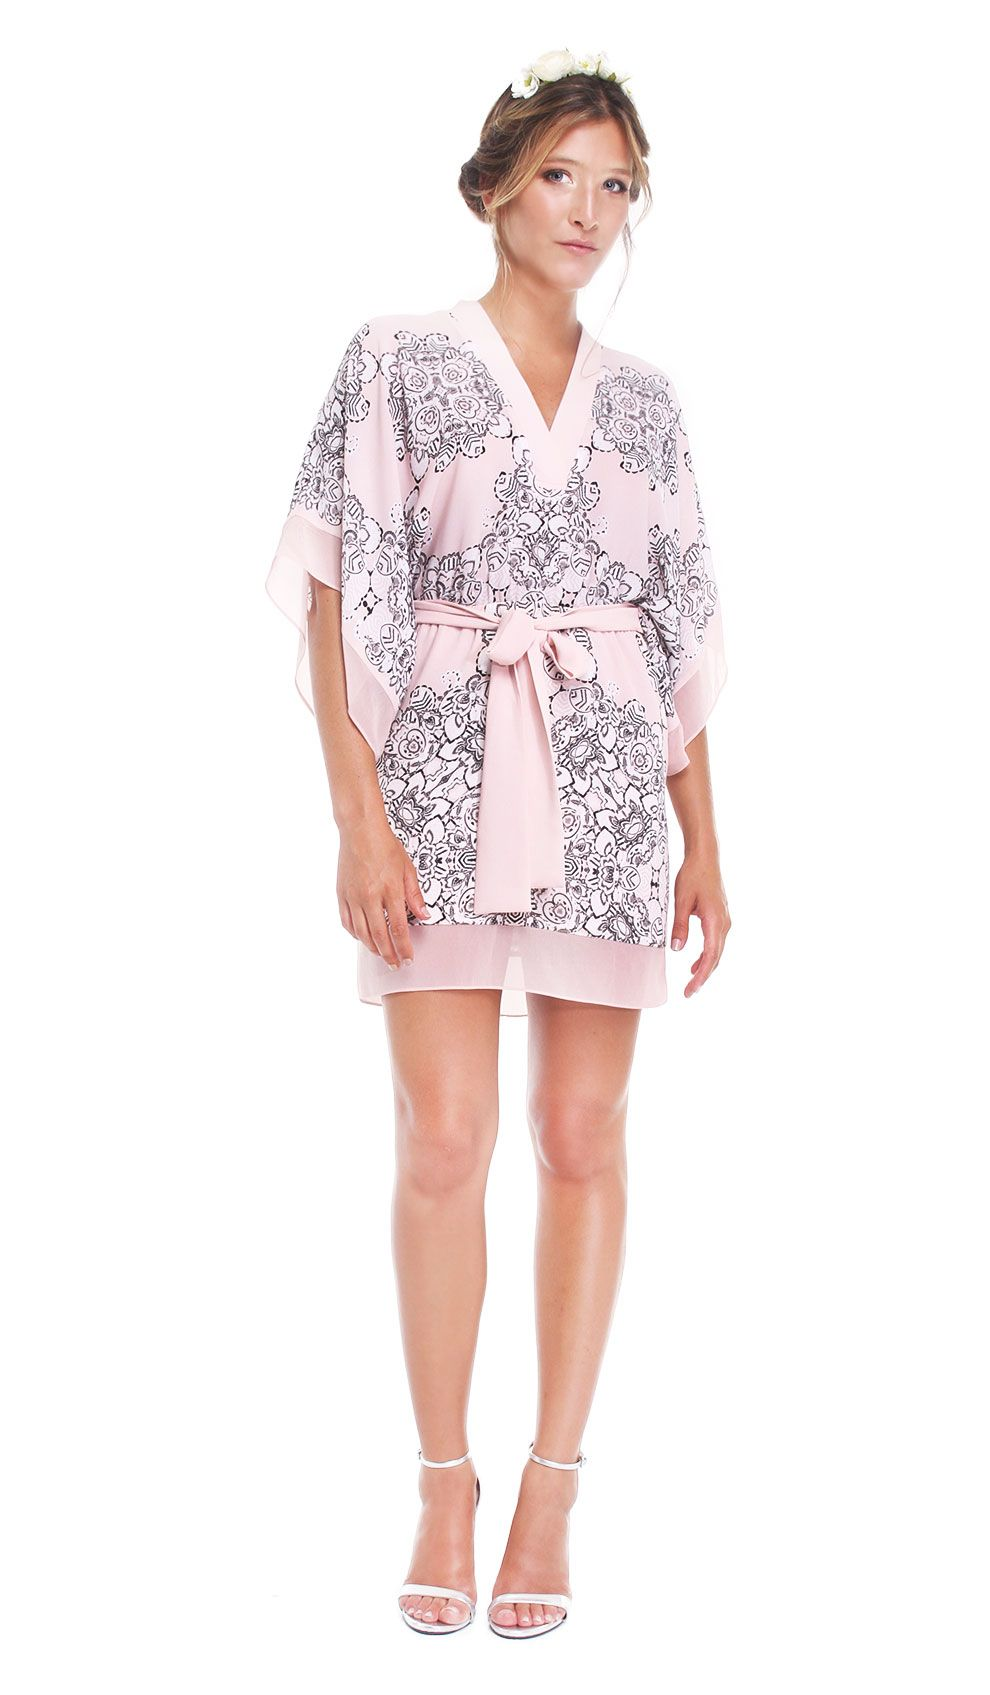 Bcbg max azria pink kimono dress chic by choice hire designer